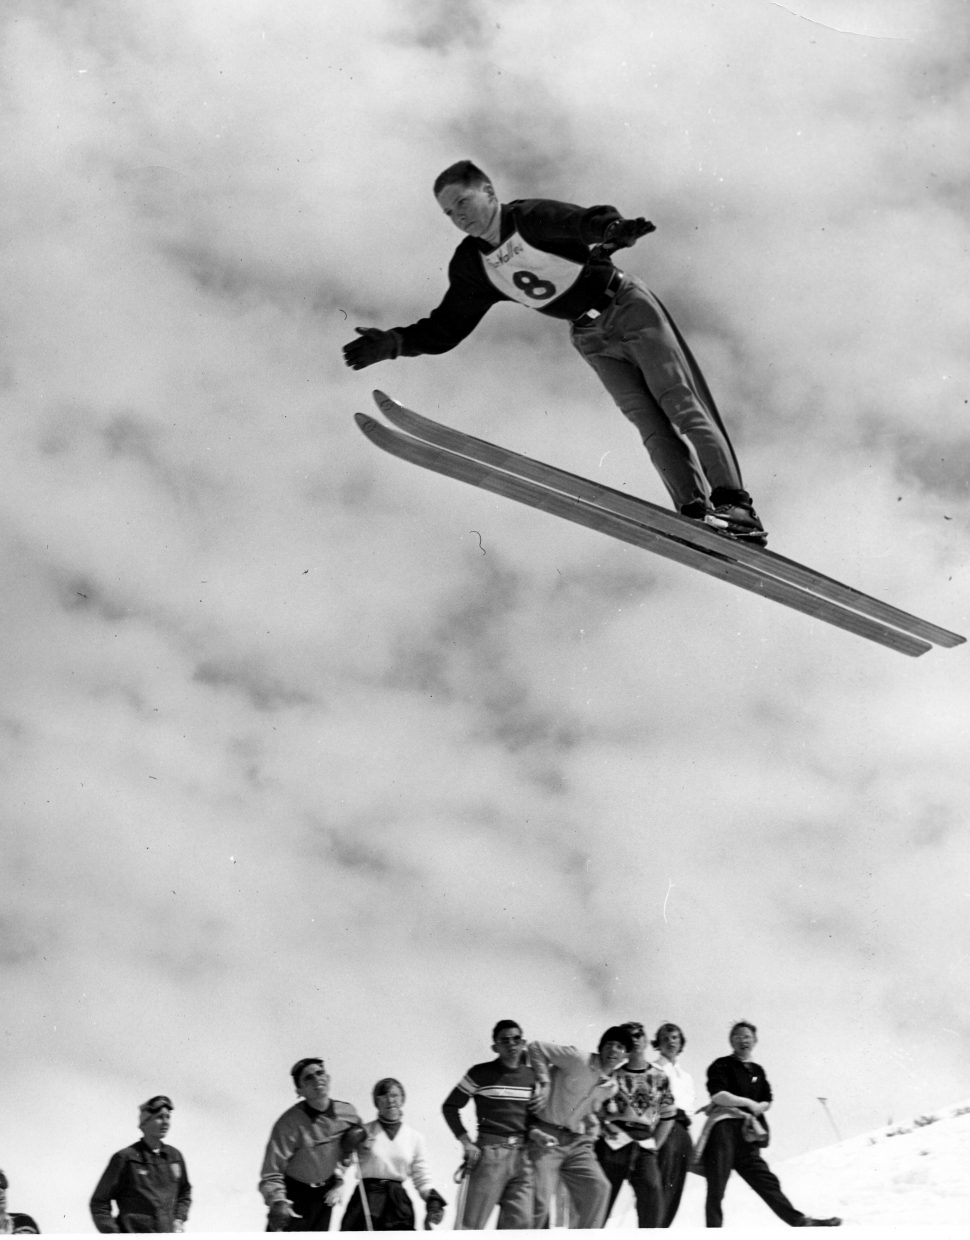 Buddy Werner was an excellent jumper, but his legacy would be as a racer. (Tread of the Pioneers Museum/courtesy)